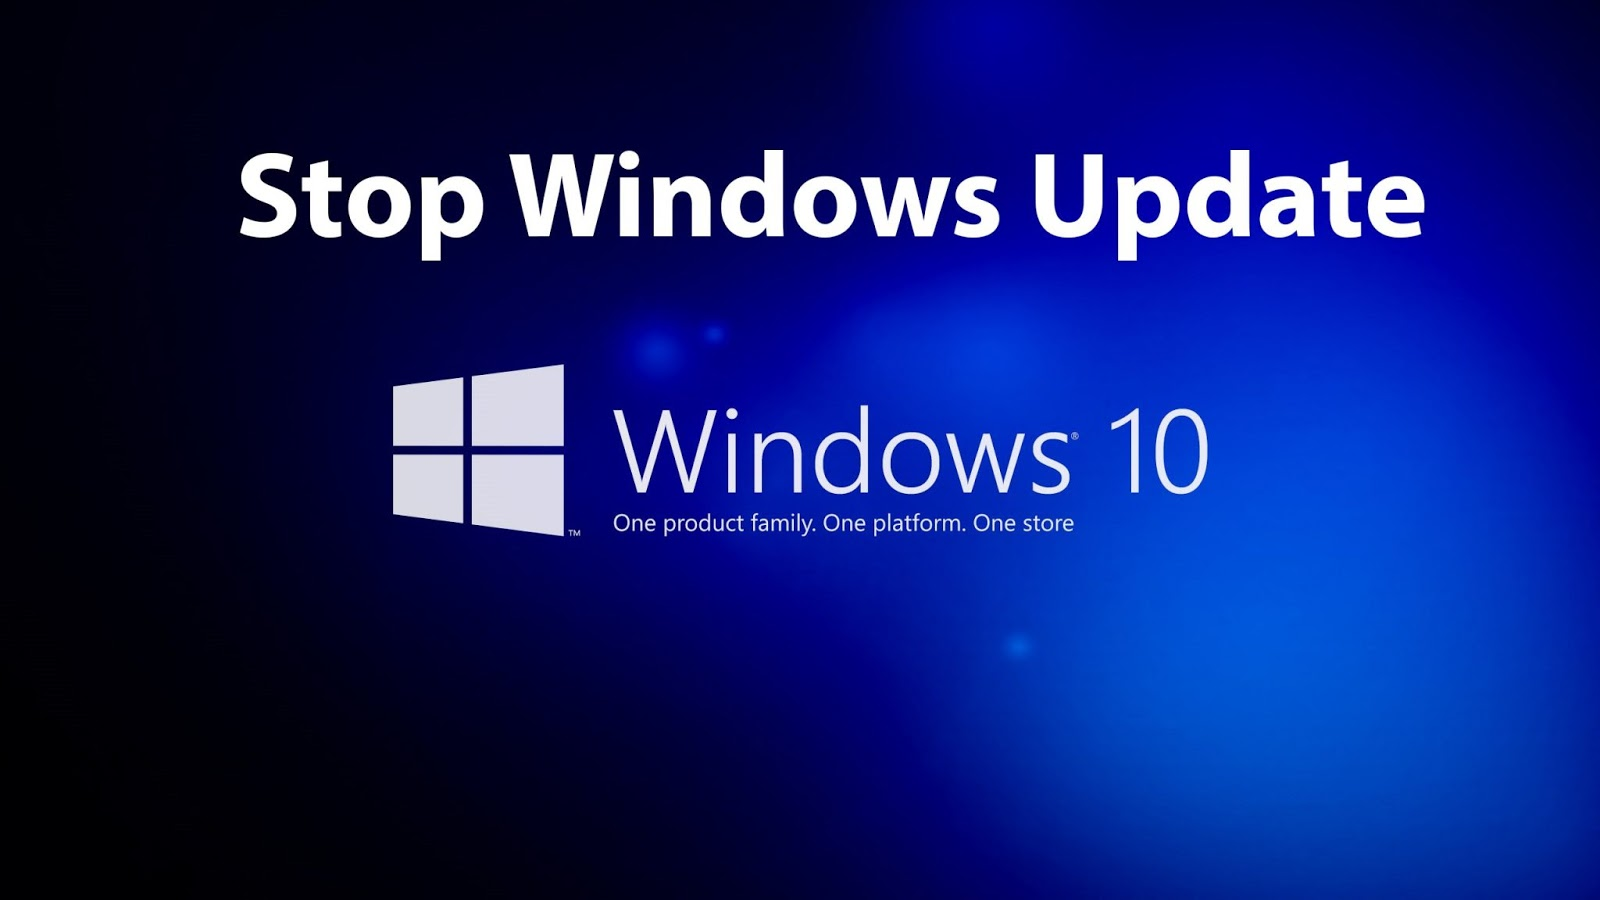 How To Stop/Disable Windows 10 Auto Update (Automatic Update) Permanently